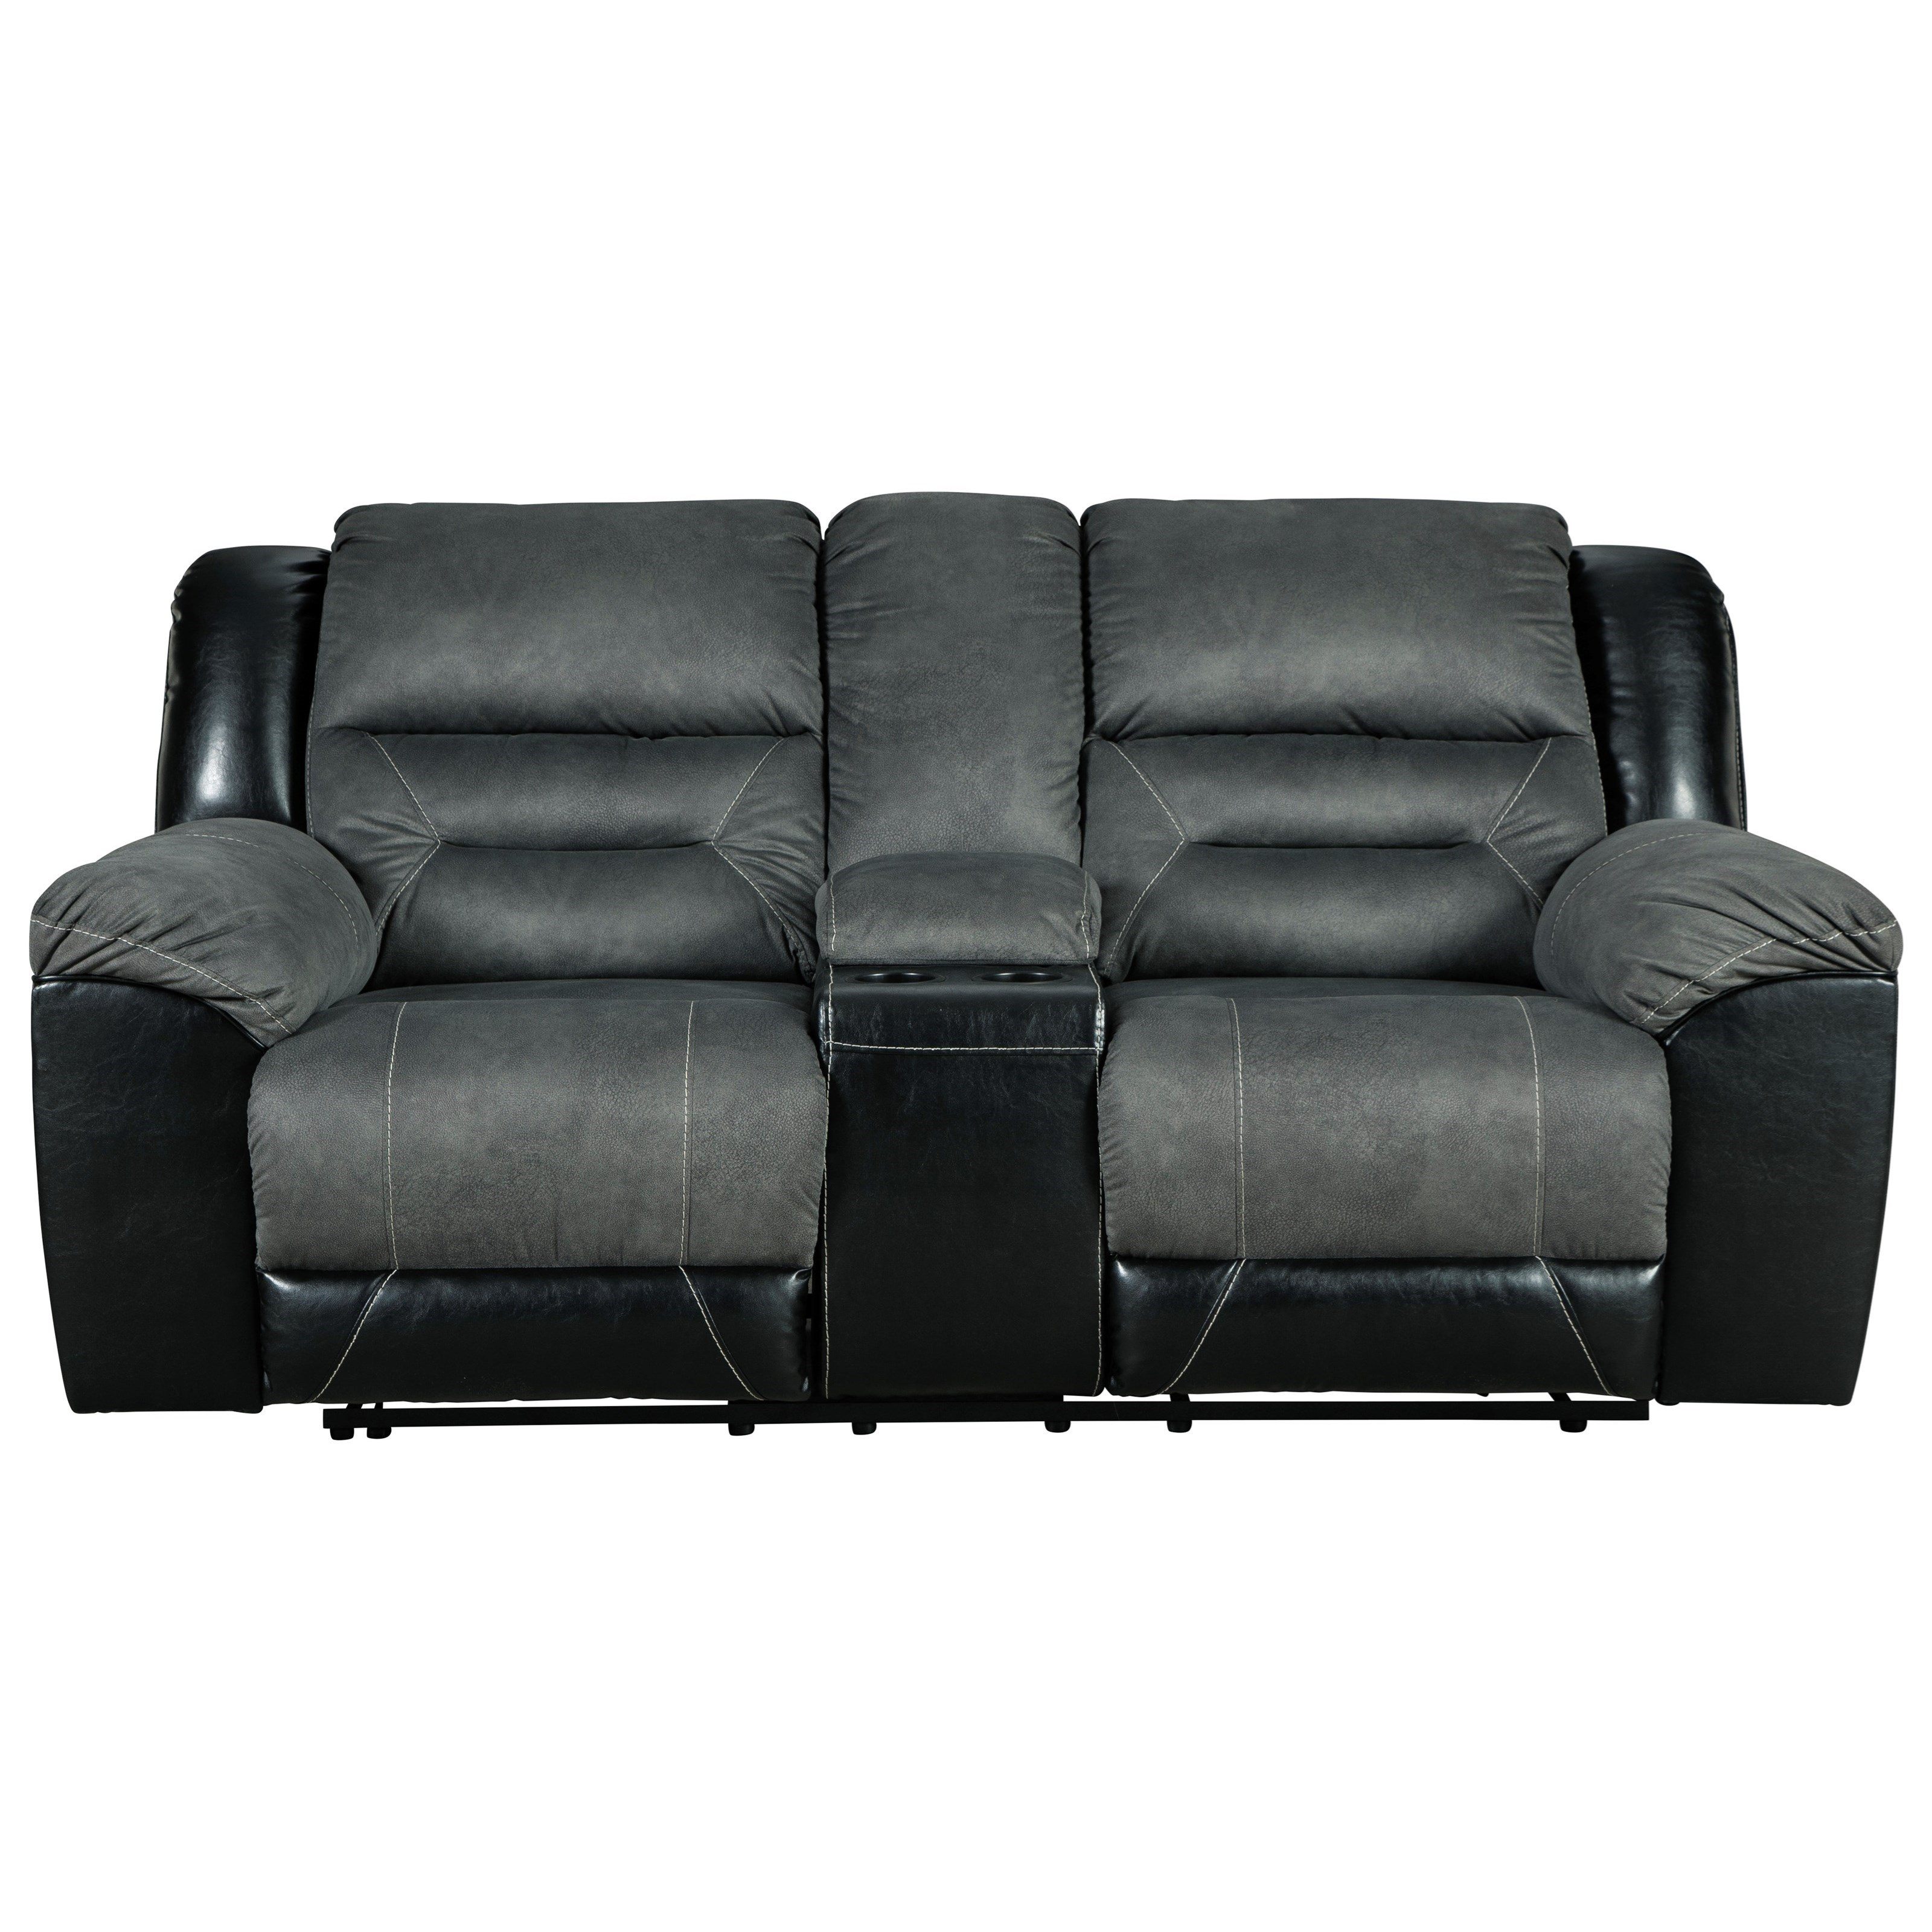 Earhart Reclining Loveseat with Console by Signature Design by Ashley at Northeast Factory Direct